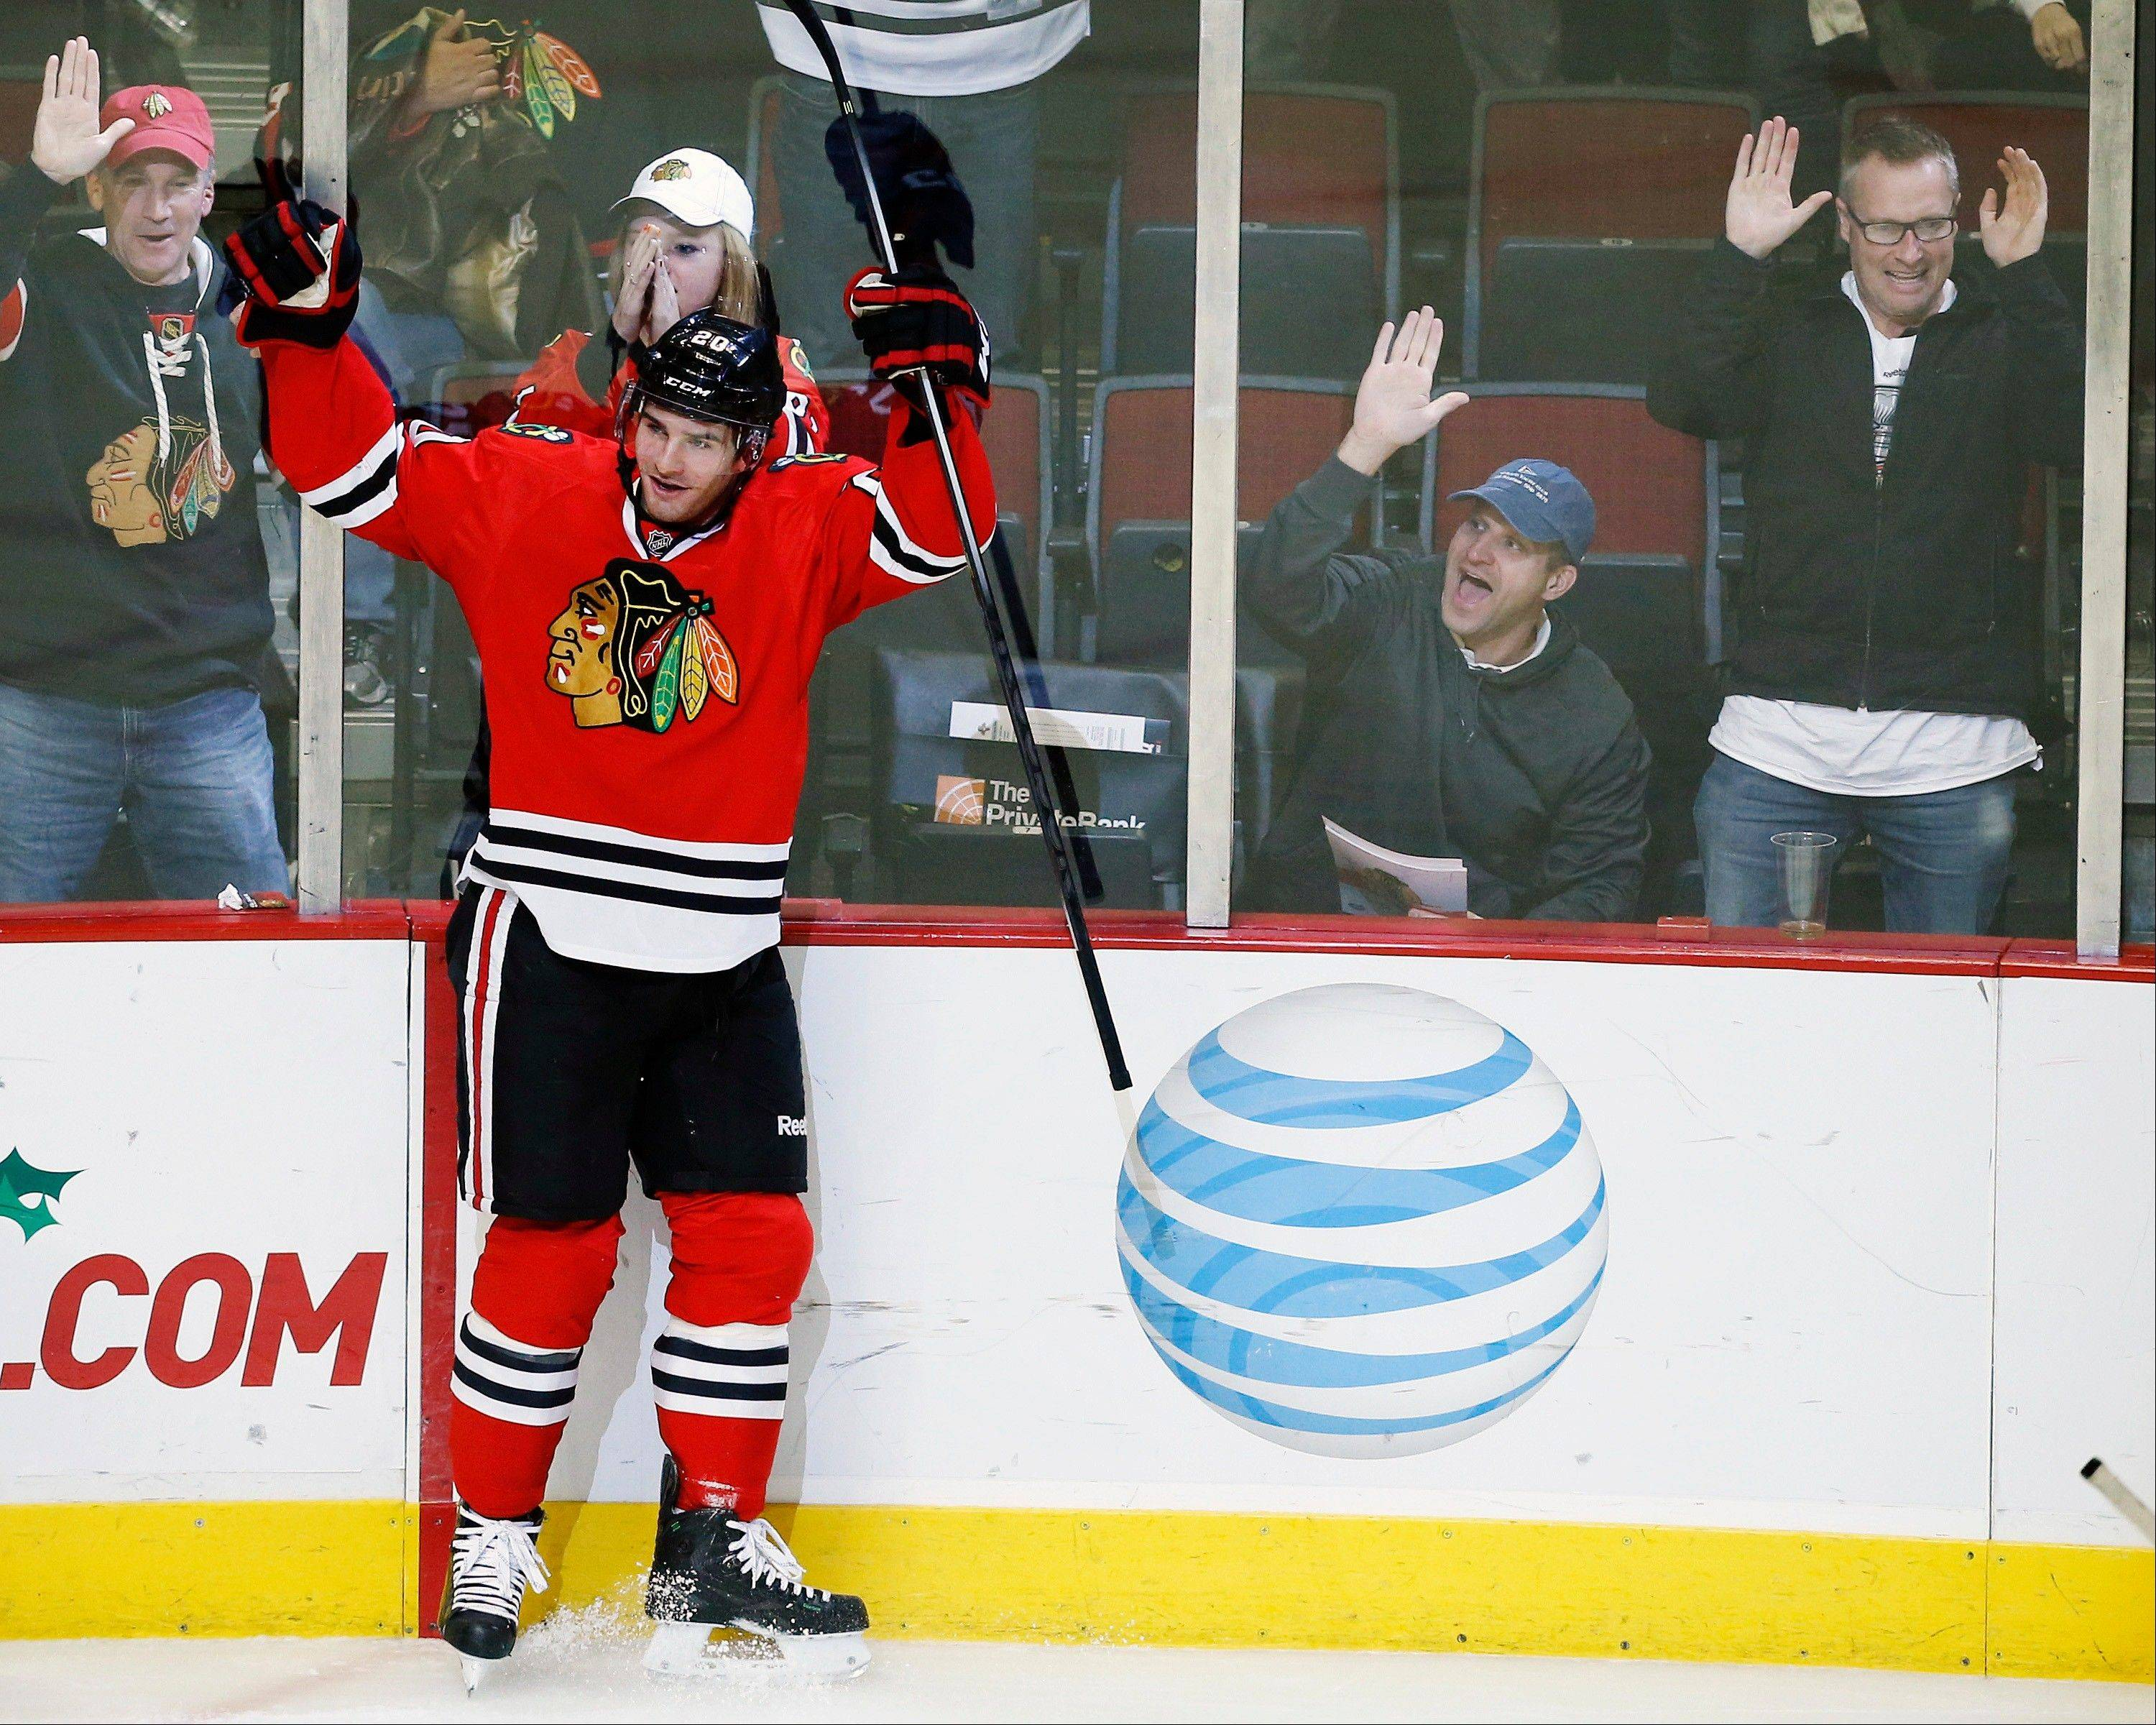 Blackhawks left wing Brandon Saad (20) celebrates scoring a goal against the Florida Panthers during the third period of an NHL hockey game on Sunday, Dec. 8, 2013, at United Center.